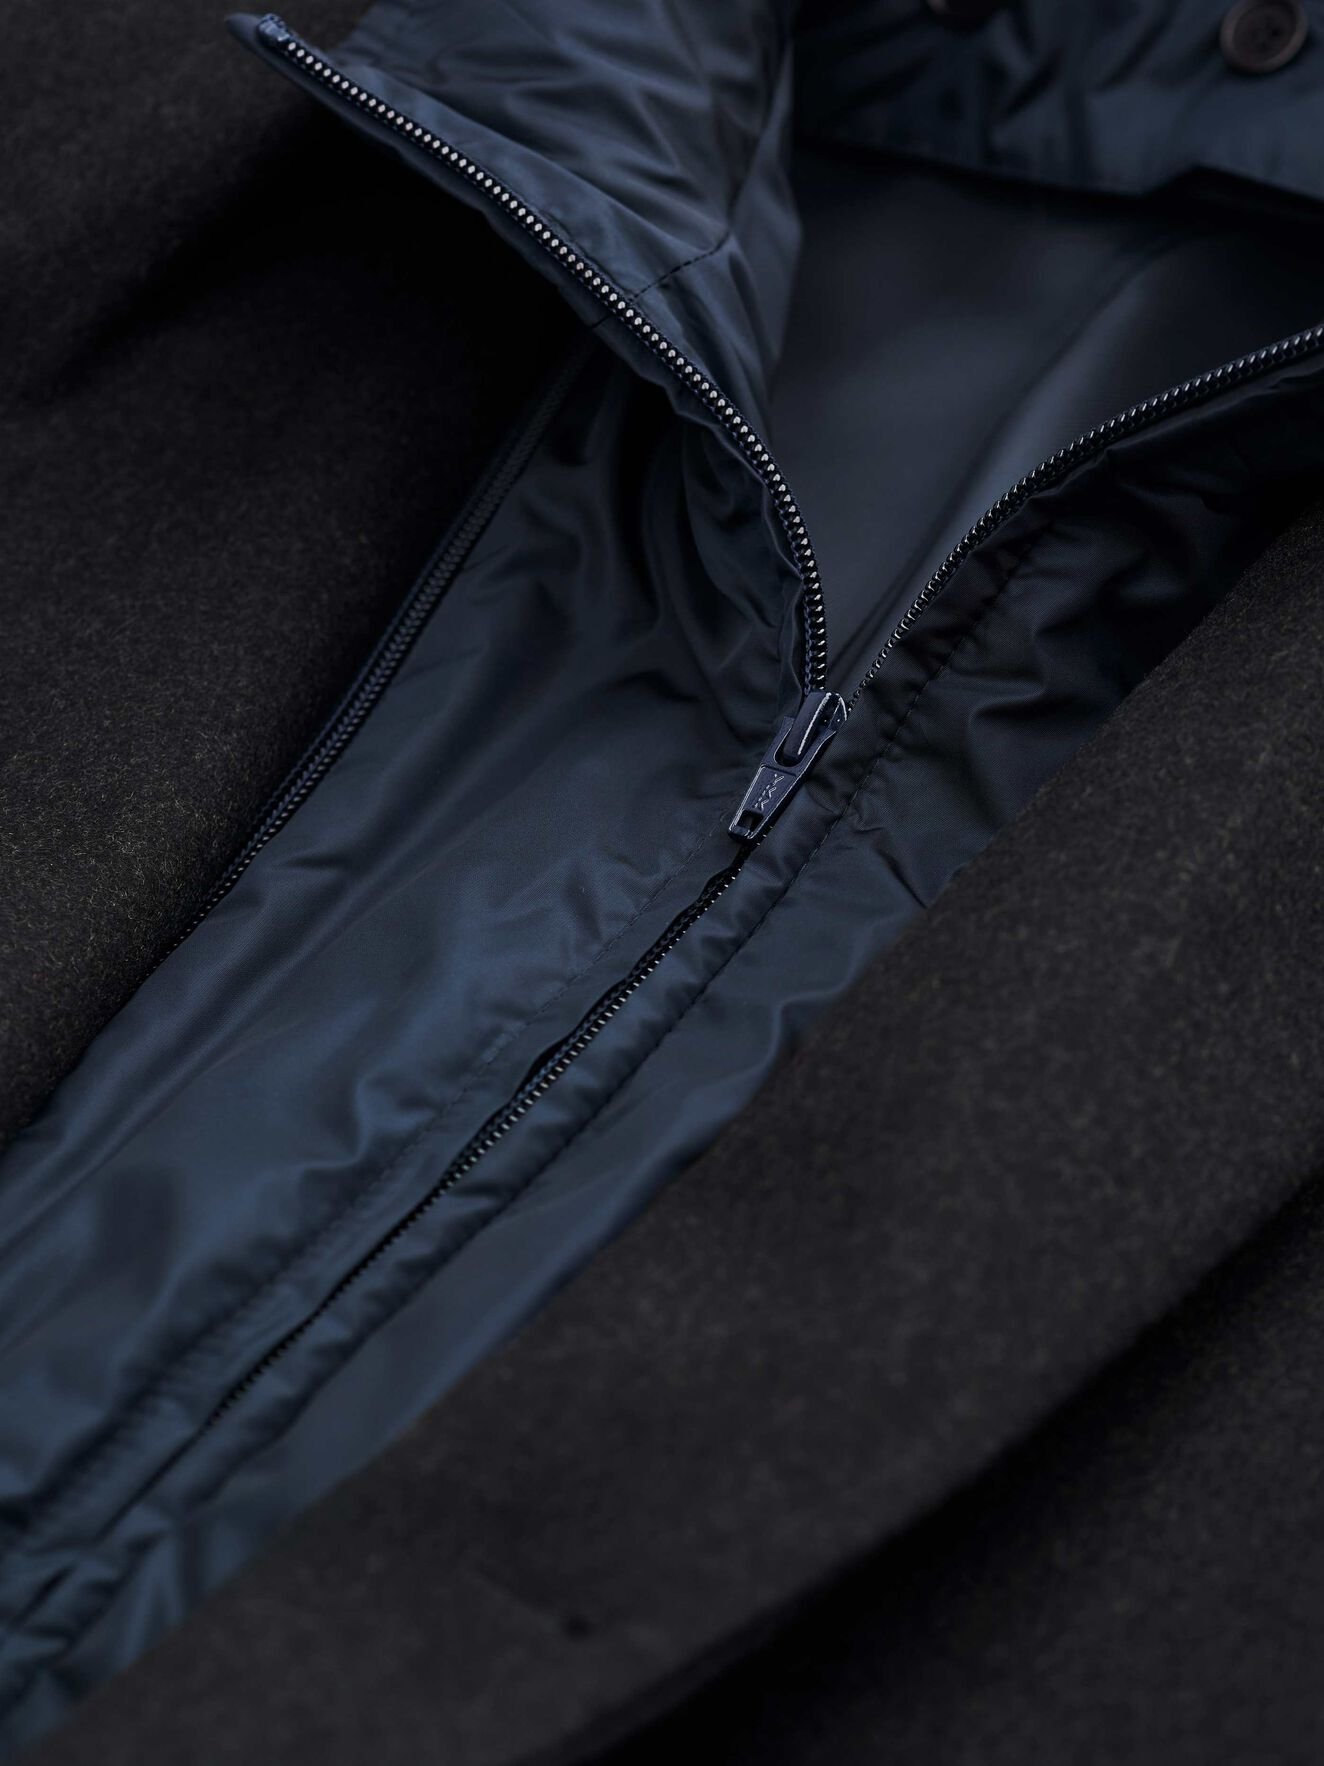 Cemper Coat in Charcoal from Tiger of Sweden